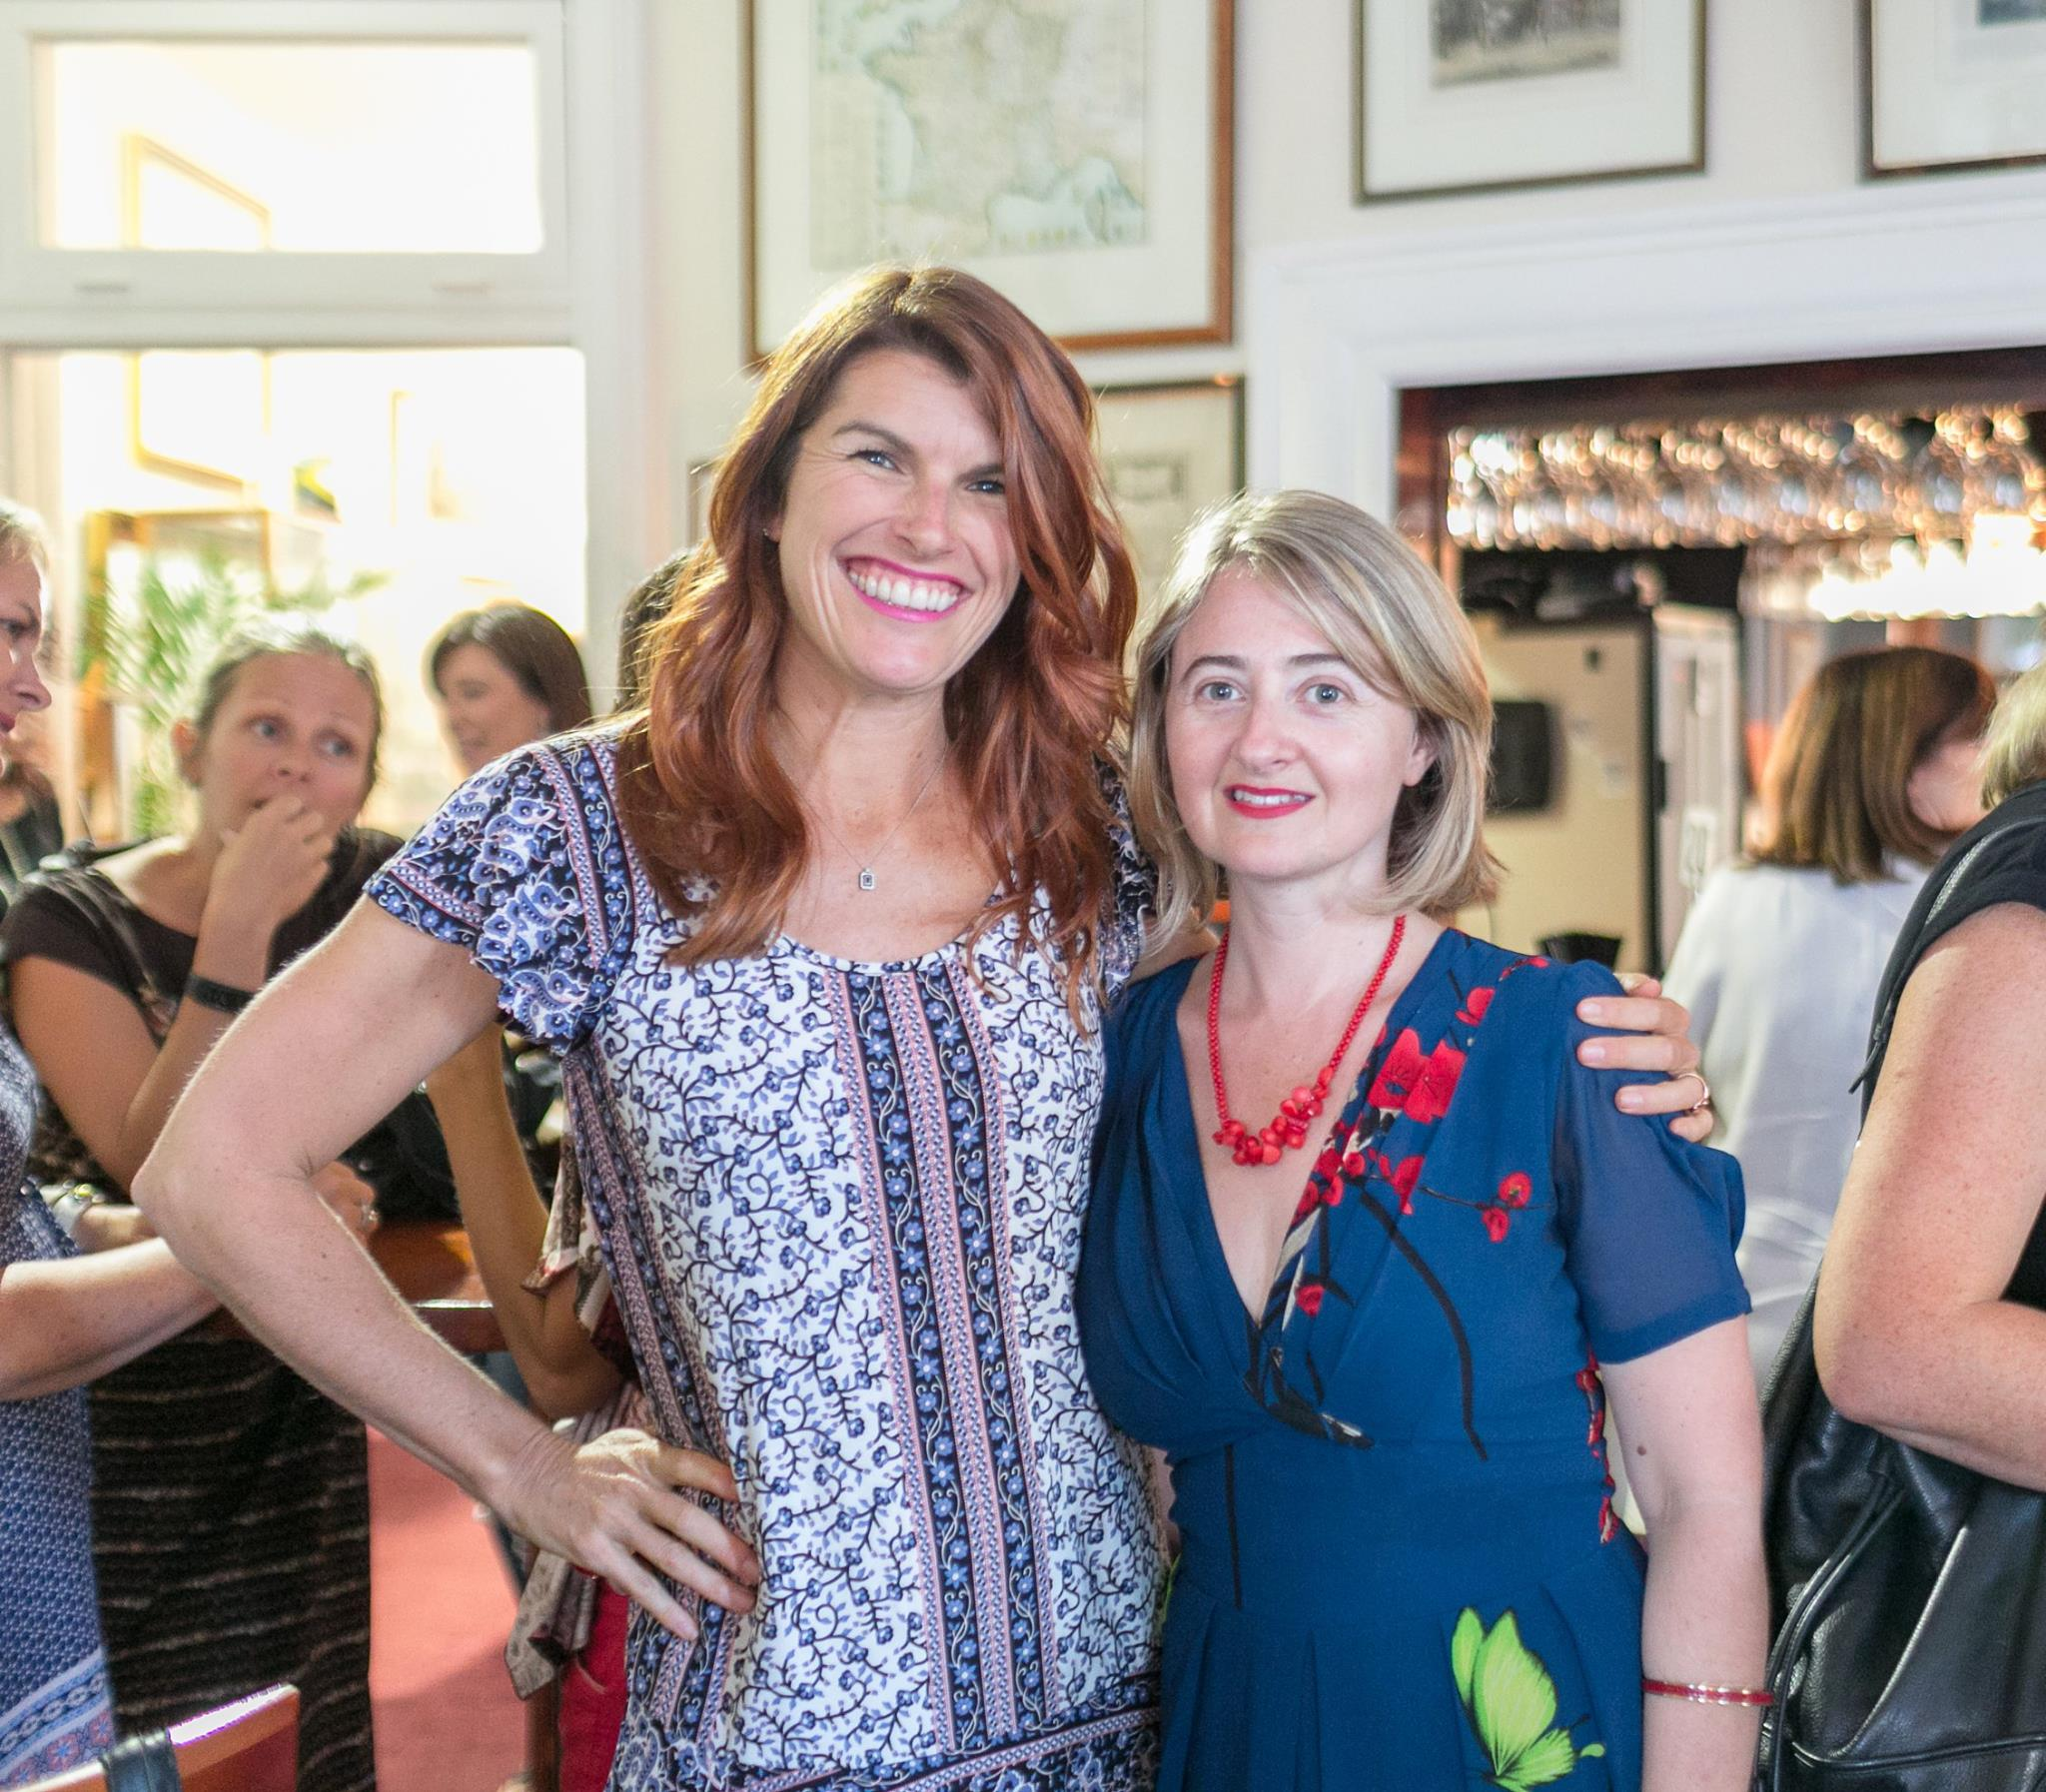 With Lizzy Williamson - presenter at our first Morning Tea Expert Masterclass on Thursday 25 February!